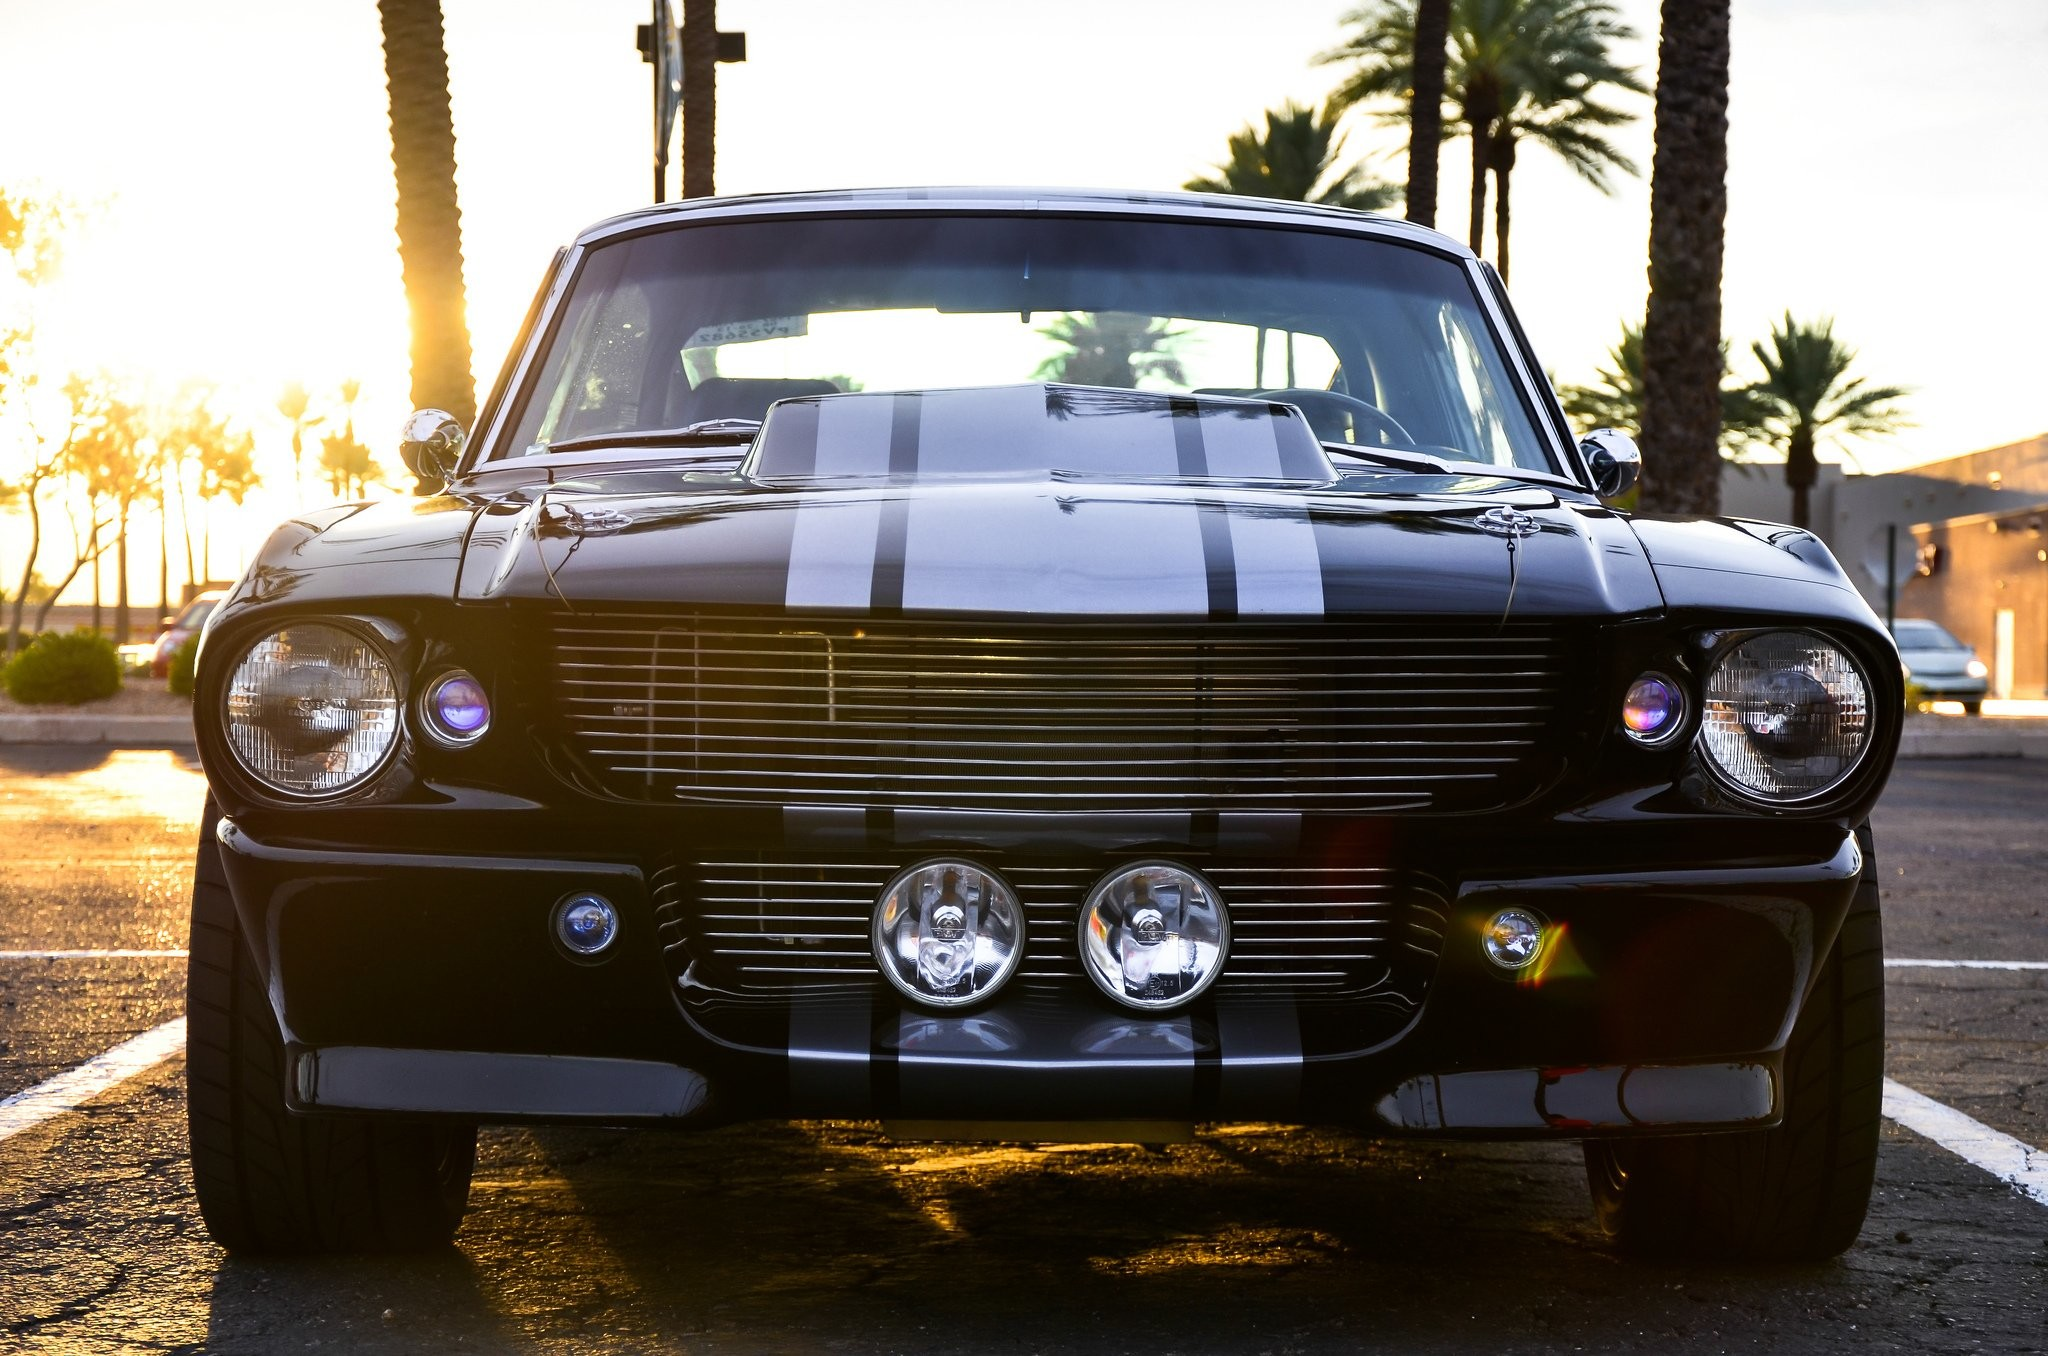 1967 classic cobra eleanor Ford GT500 hot muscle Mustang rod rods Shelby  nicolas cage movies wallpaper     493821   WallpaperUP